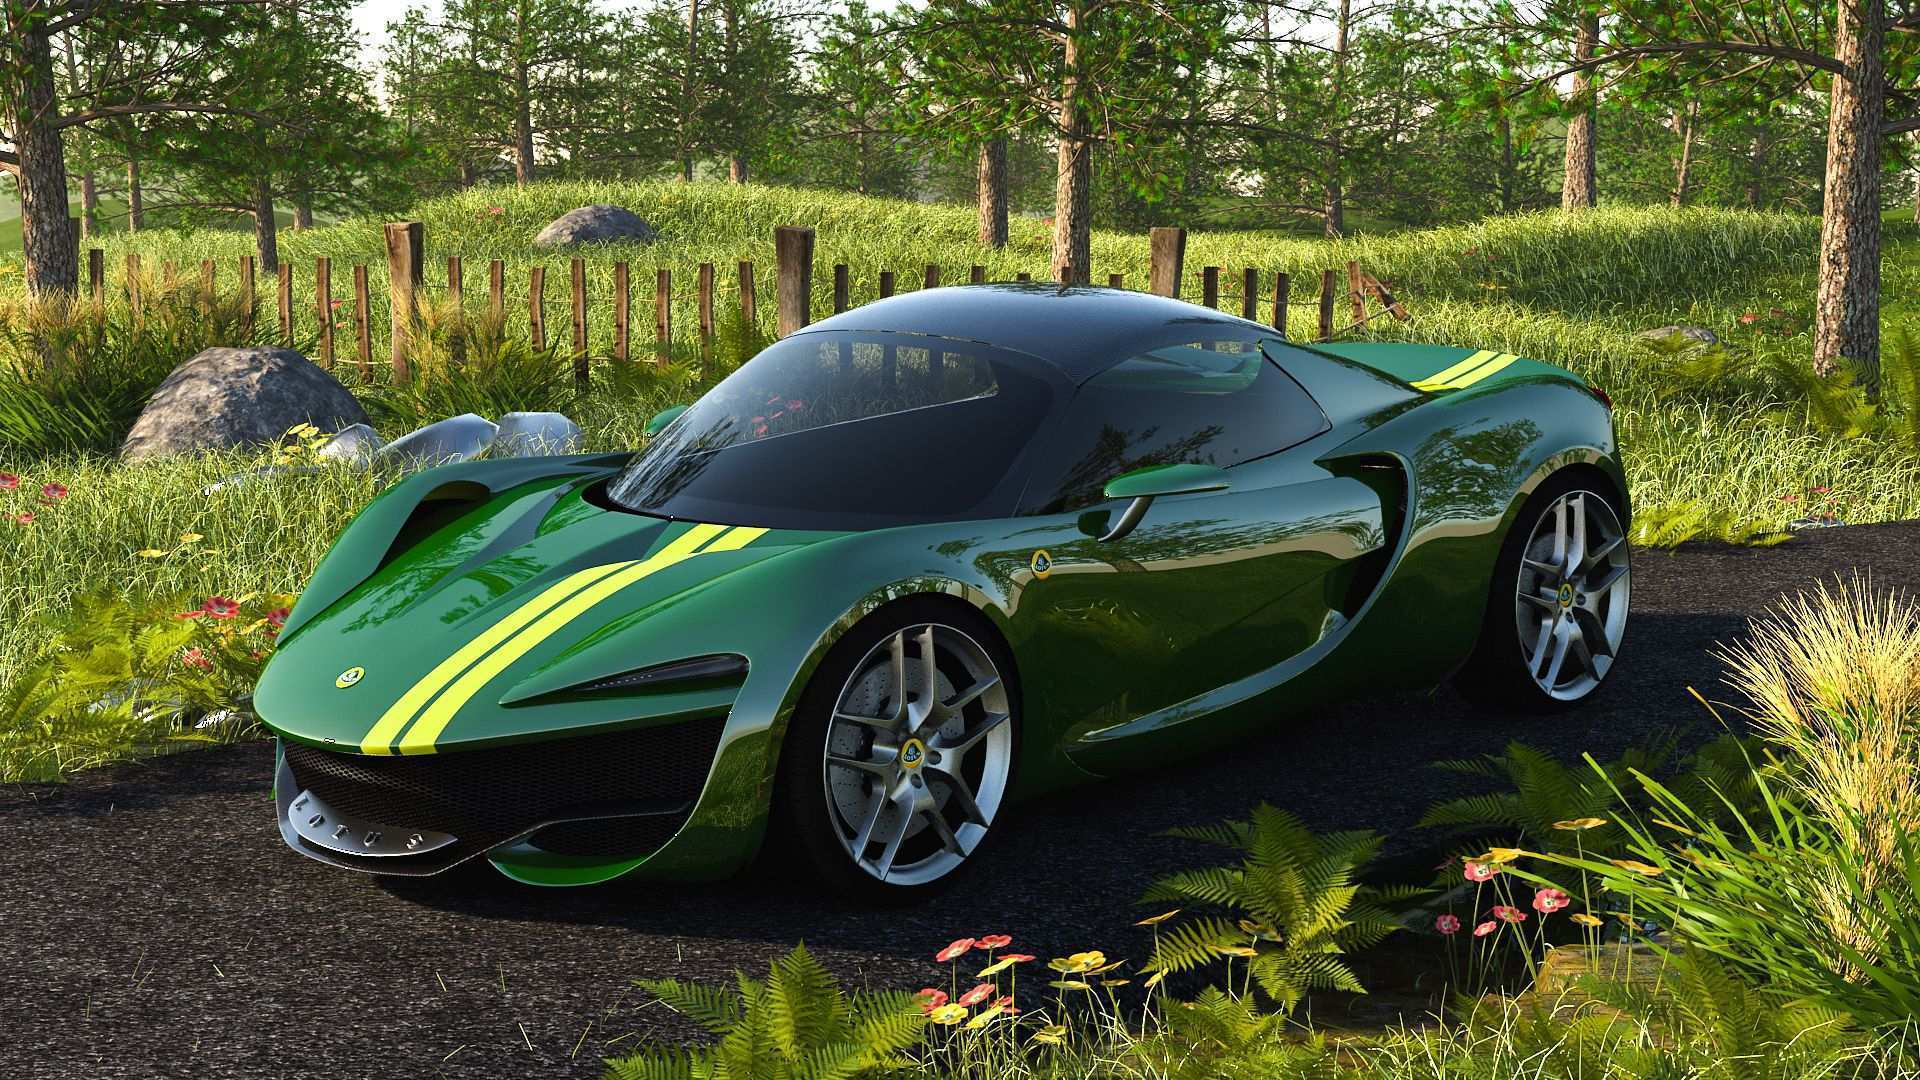 42 New 2020 Lotus Evora New Concept